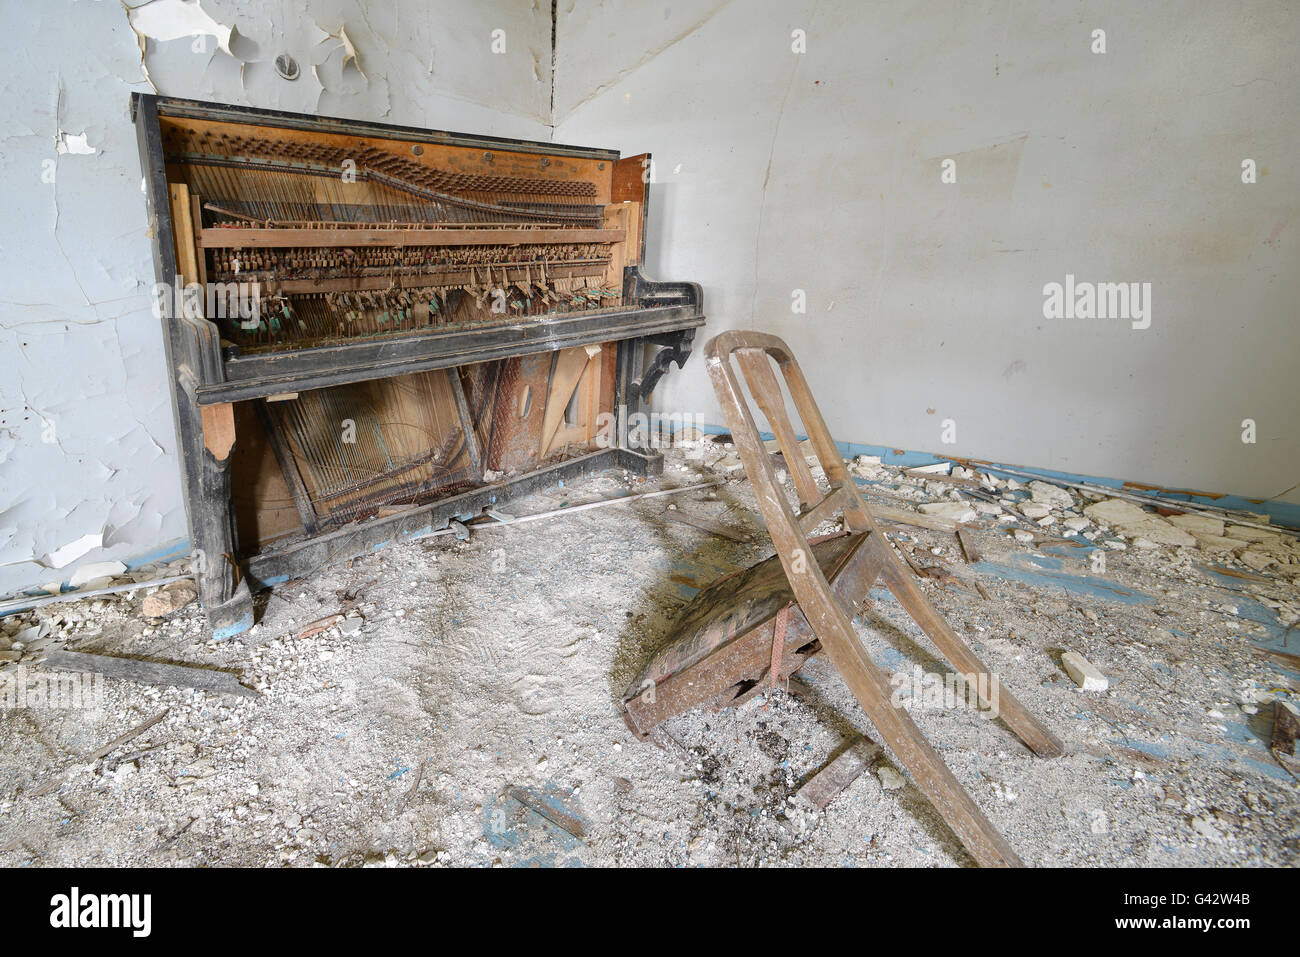 broken piano and chair in abbondoned house Lesvos Greece Stock Photo